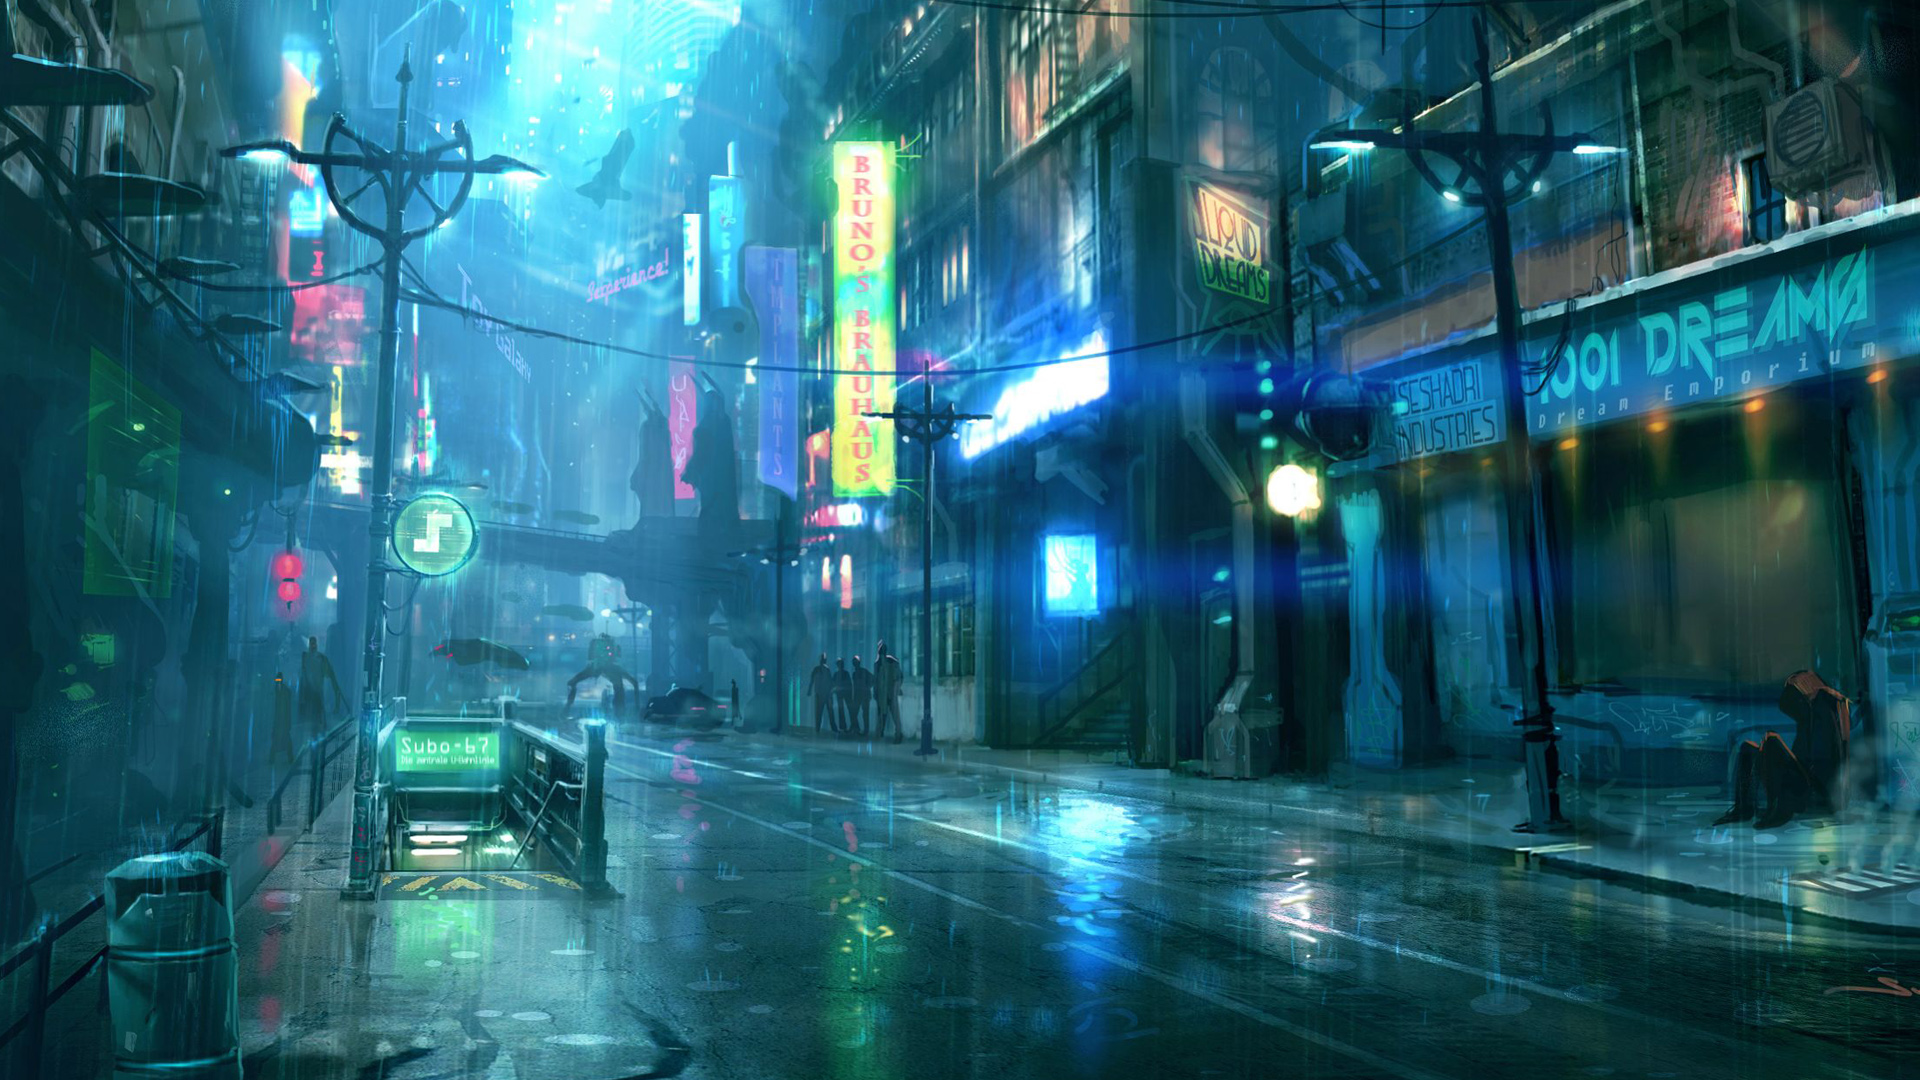 Amazing Cyberpunk Pictures & Backgrounds